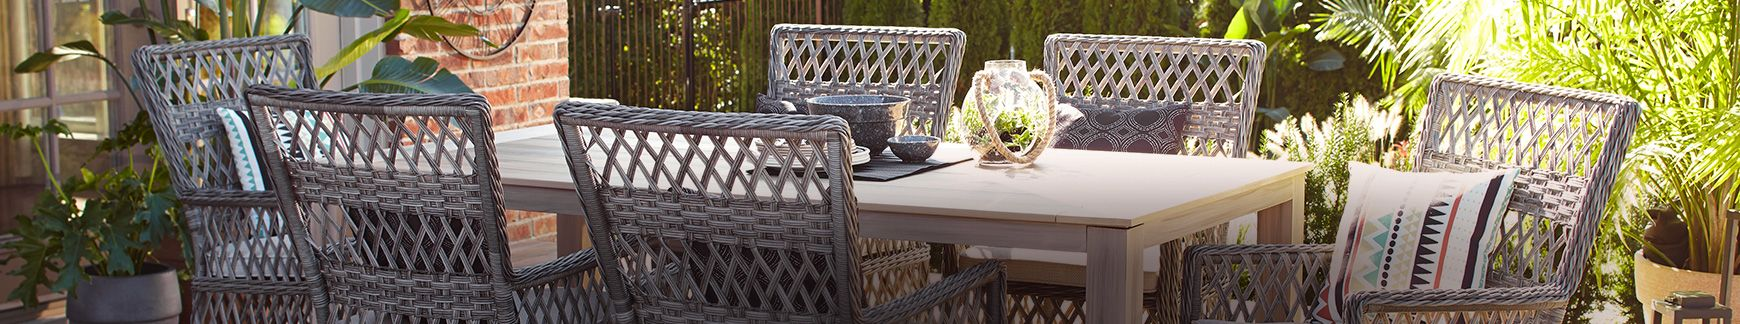 crate and table patio furniture cayman barrel dining on outdoor save